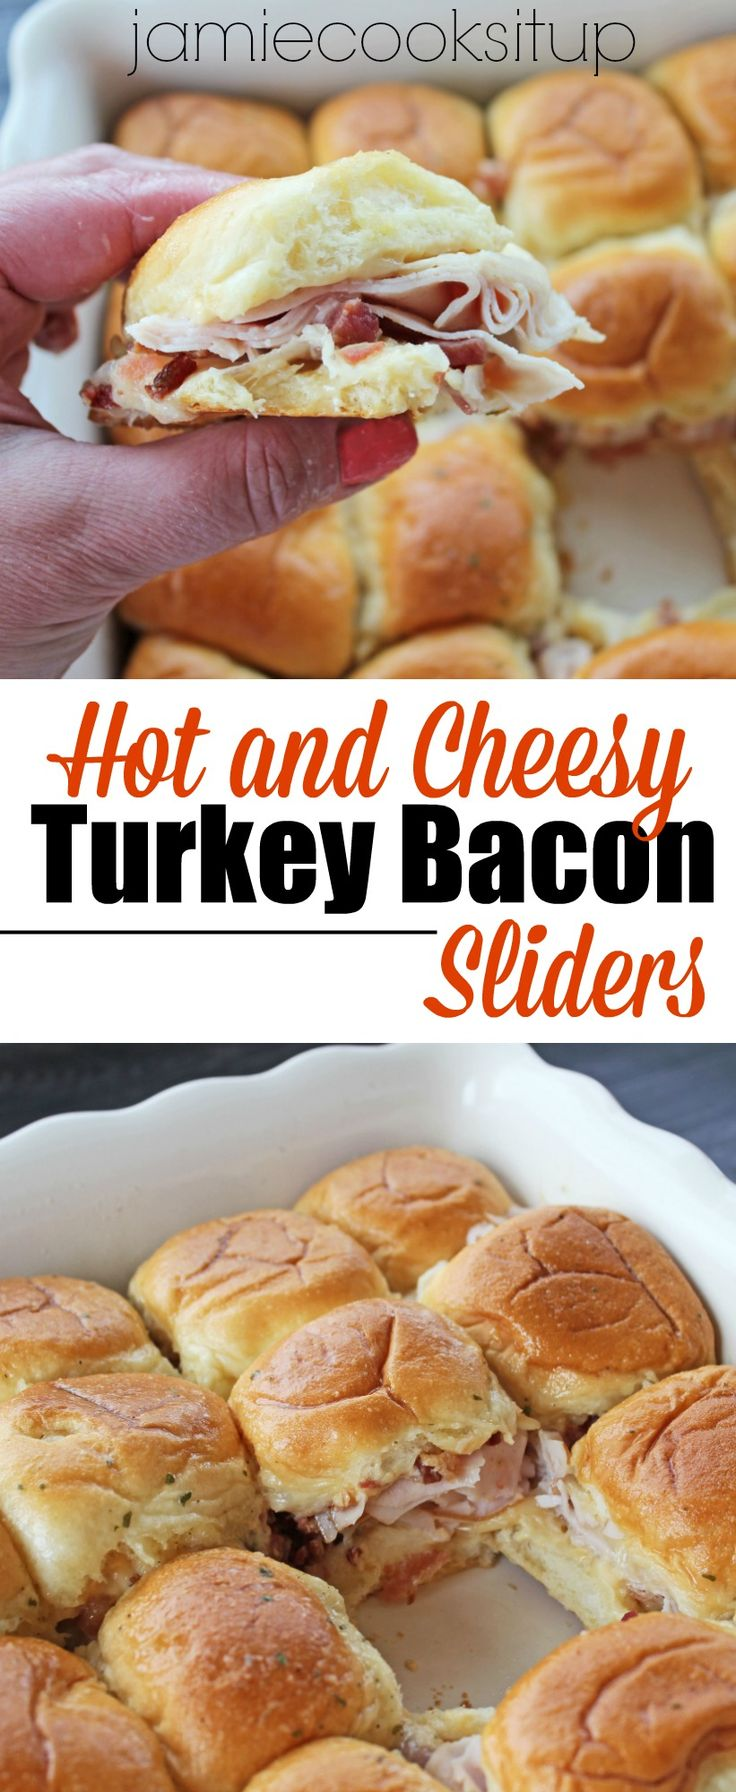 Hot and Cheesy Turkey Bacon Sliders   Jamie Cooks It Up - Family Favorite Food and Recipes